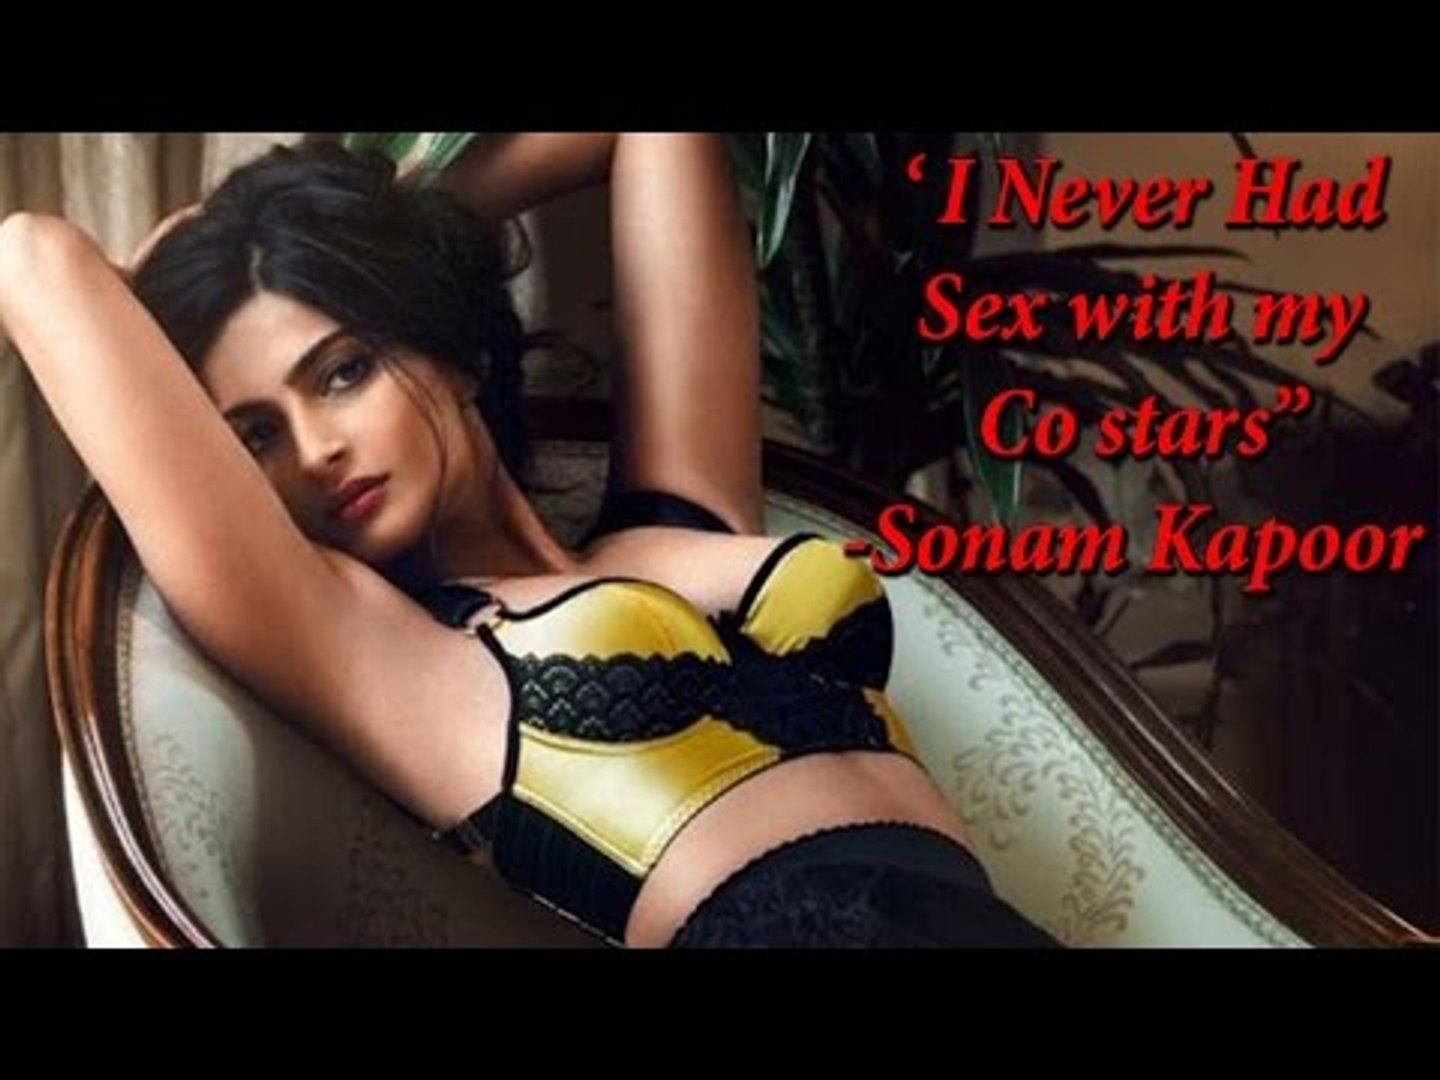 """Anil Sex Video Com sonam kapoor says """"i never had sex with my co stars"""" - video"""